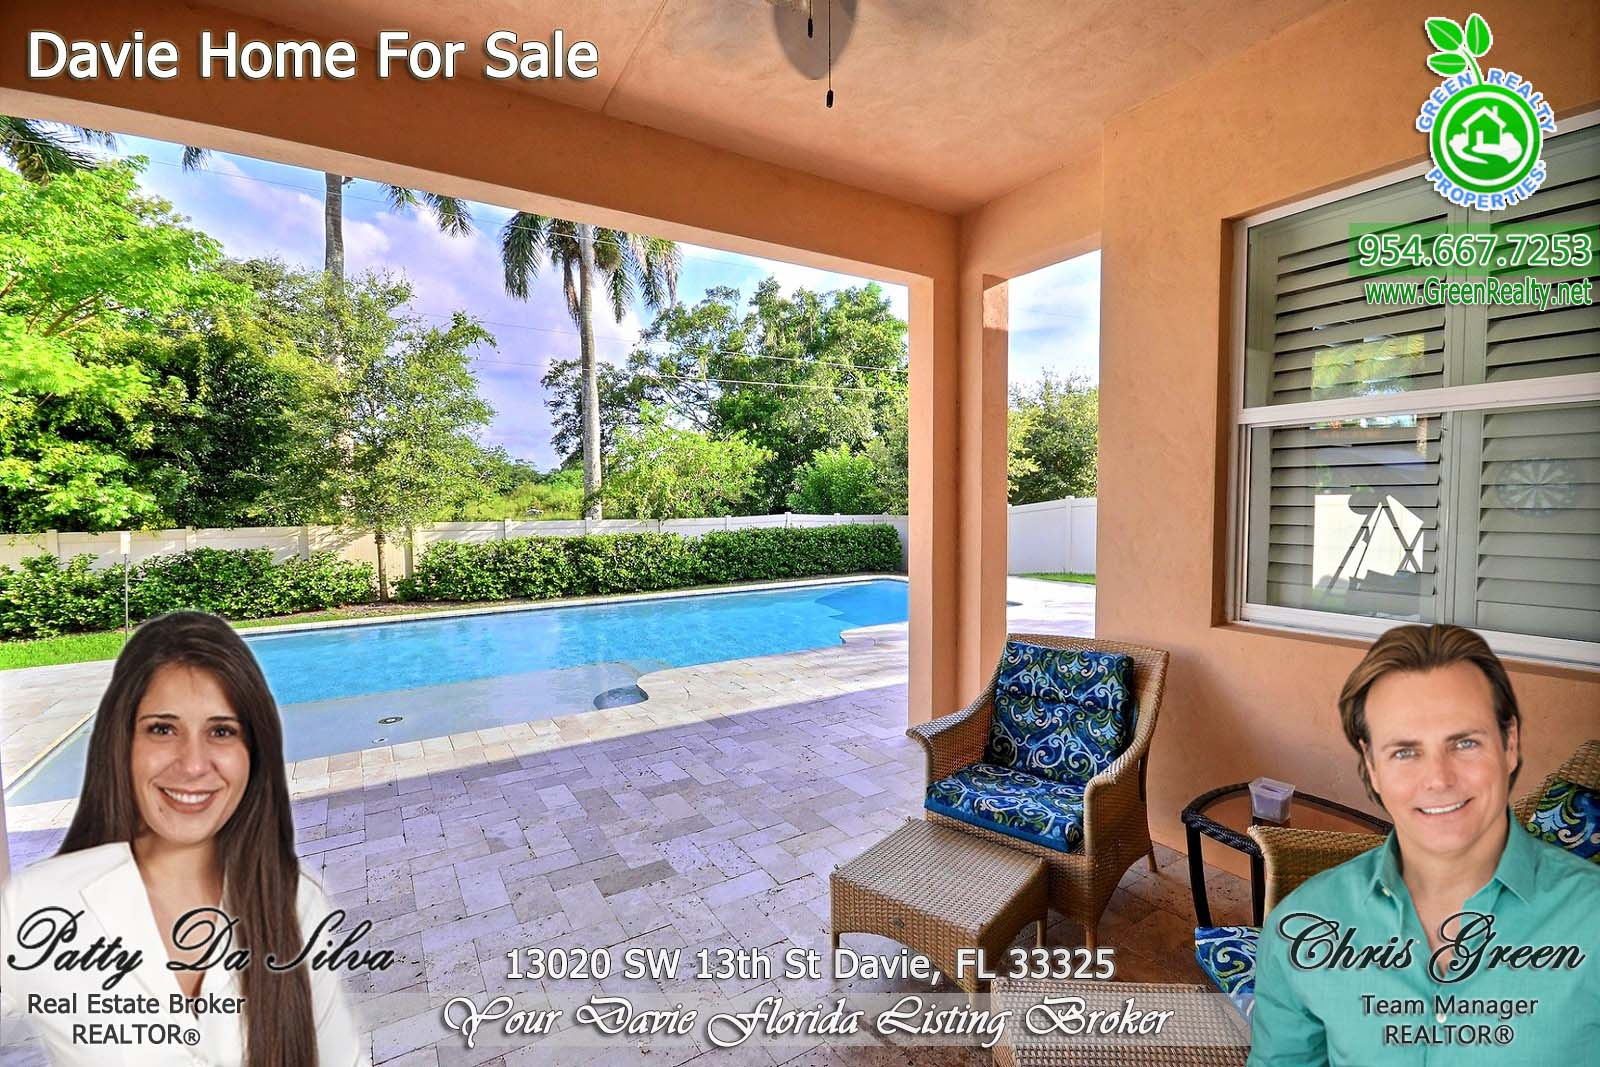 23 Homes For Sale in Davie Florida (3)